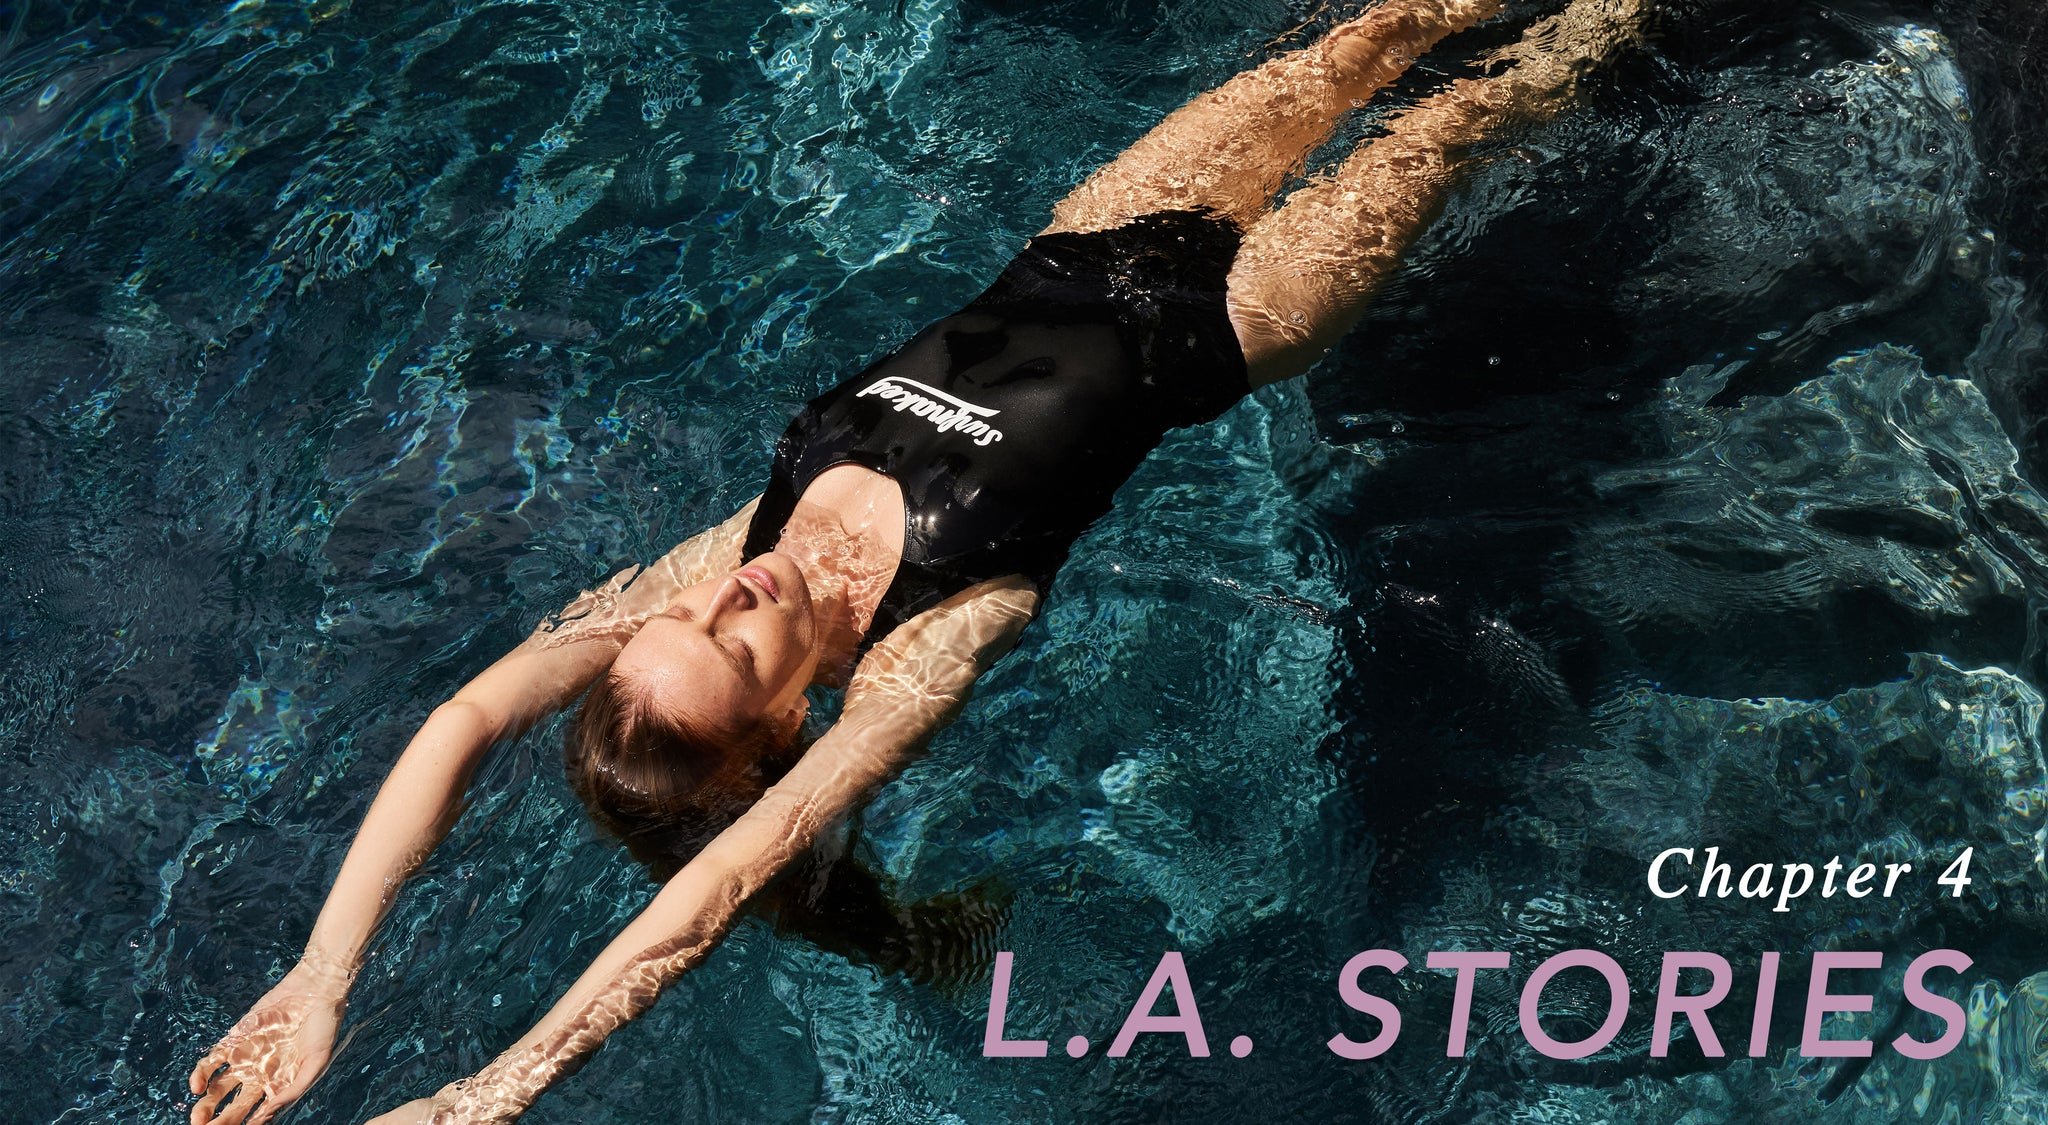 L.A. Stories | Inspired by the L.A. sunset